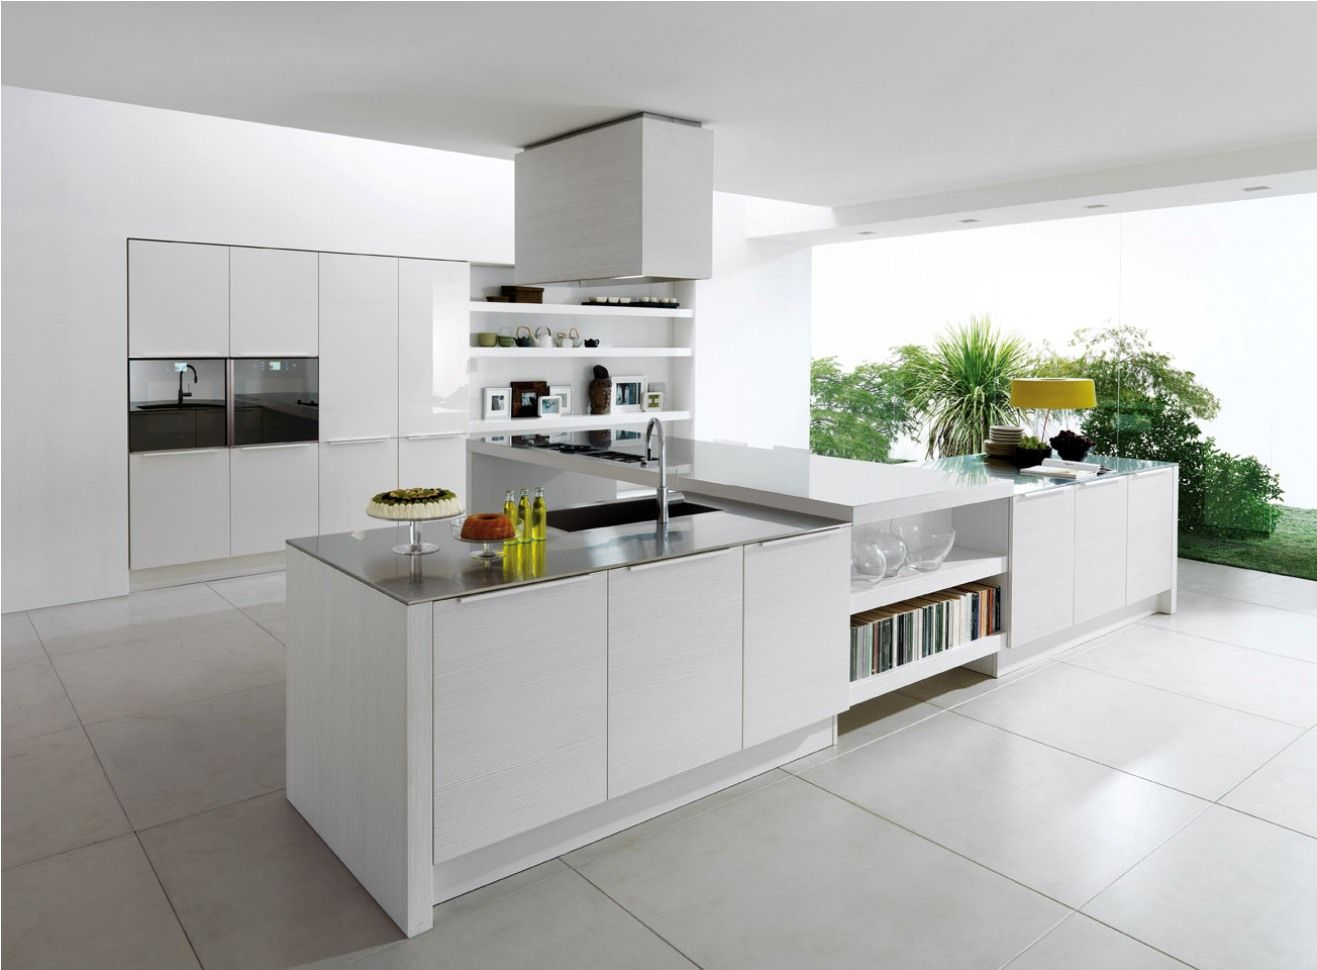 White Kitchen Interior Design 30 contemporary white kitchens ideas | modern kitchen designs